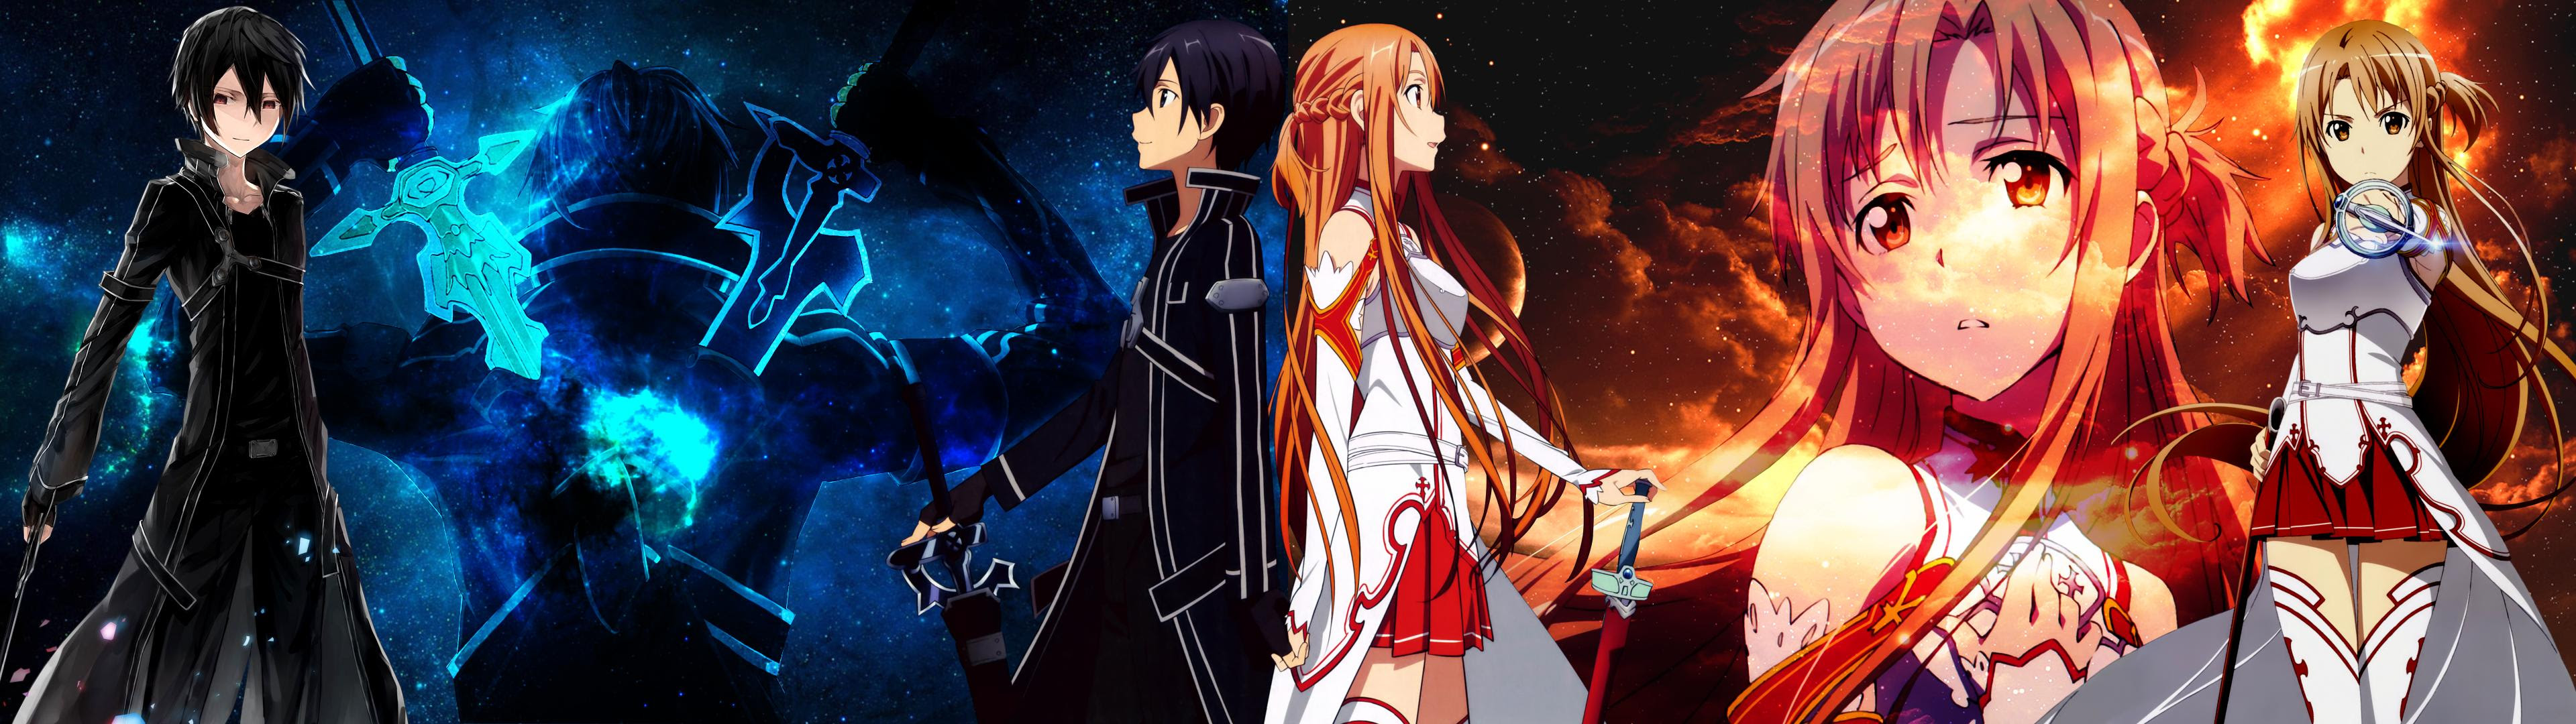 Sword Art Online Dual Monitor Wallpaper Anime Top Wallpaper